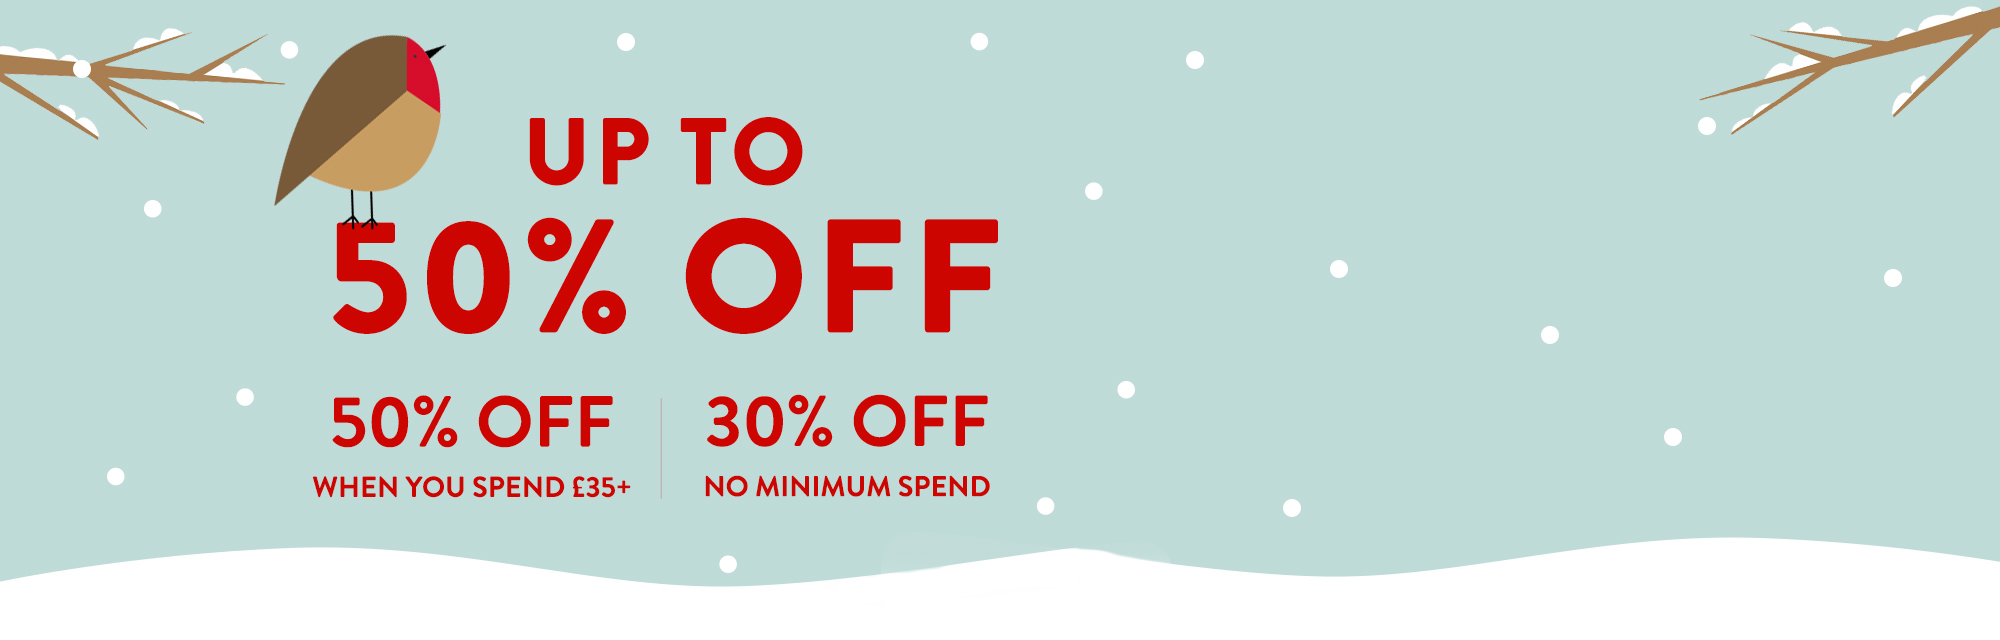 Early Bird Christmas Sale! : Christmas sale with up to 50% off everything!Use code EARLY1119 by 17/11.